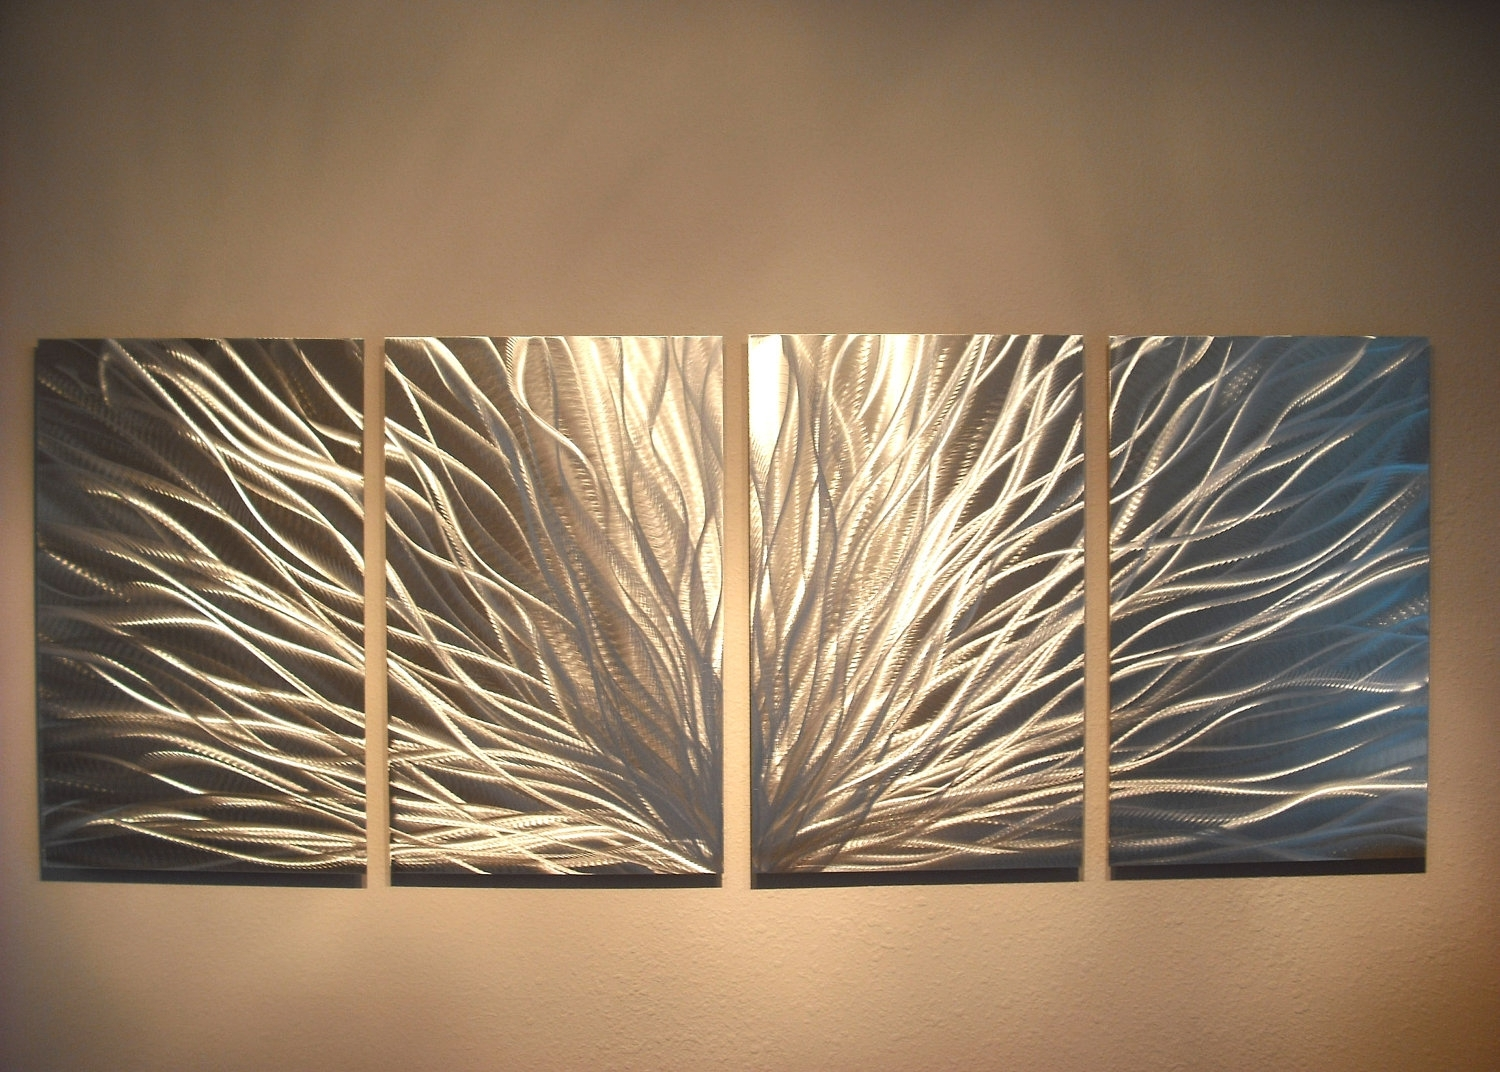 Radiance – Abstract Metal Wall Art Contemporary Modern Decor For Most Up To Date Abstract Metal Wall Art Panels (View 7 of 20)